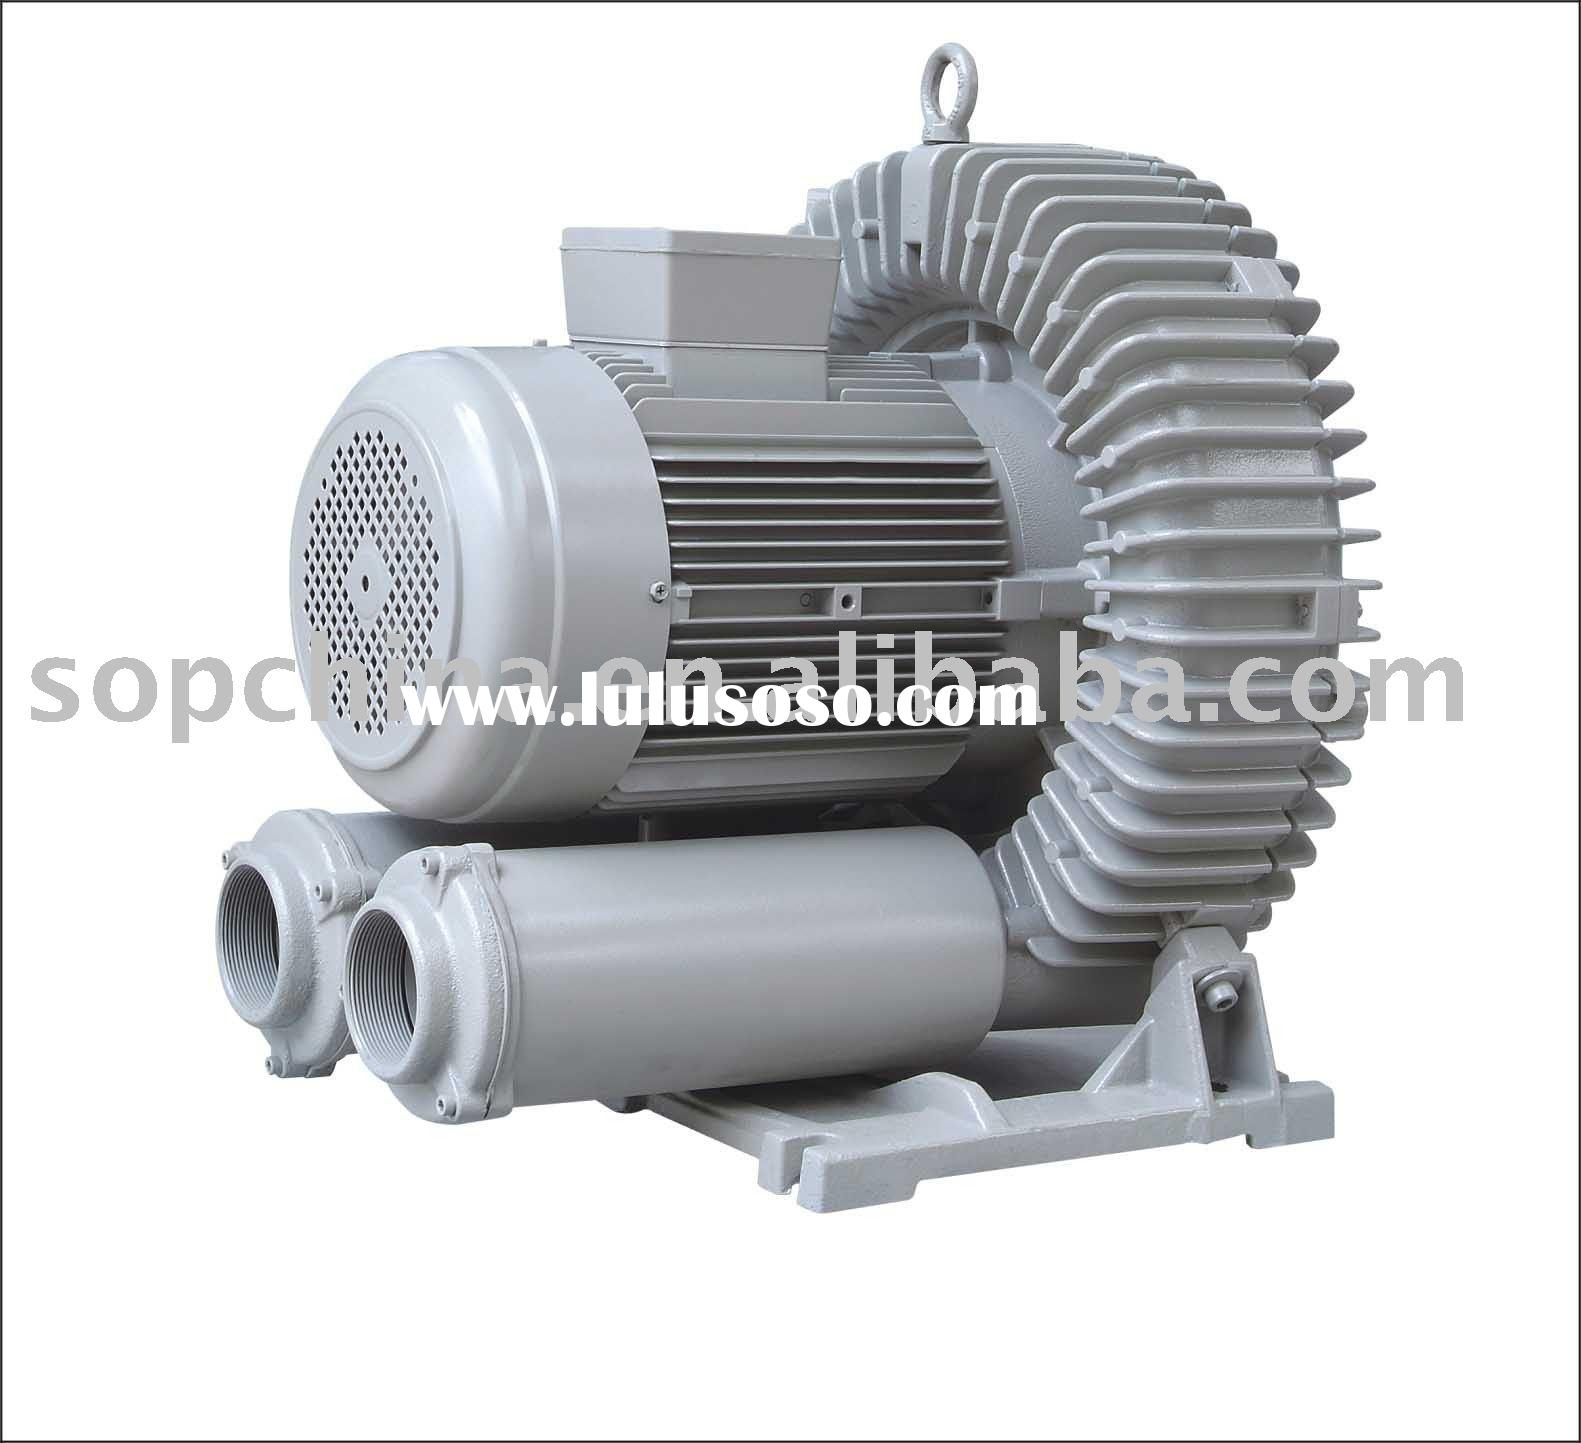 Portable Air Blowers : Portable air blower manufacturers in